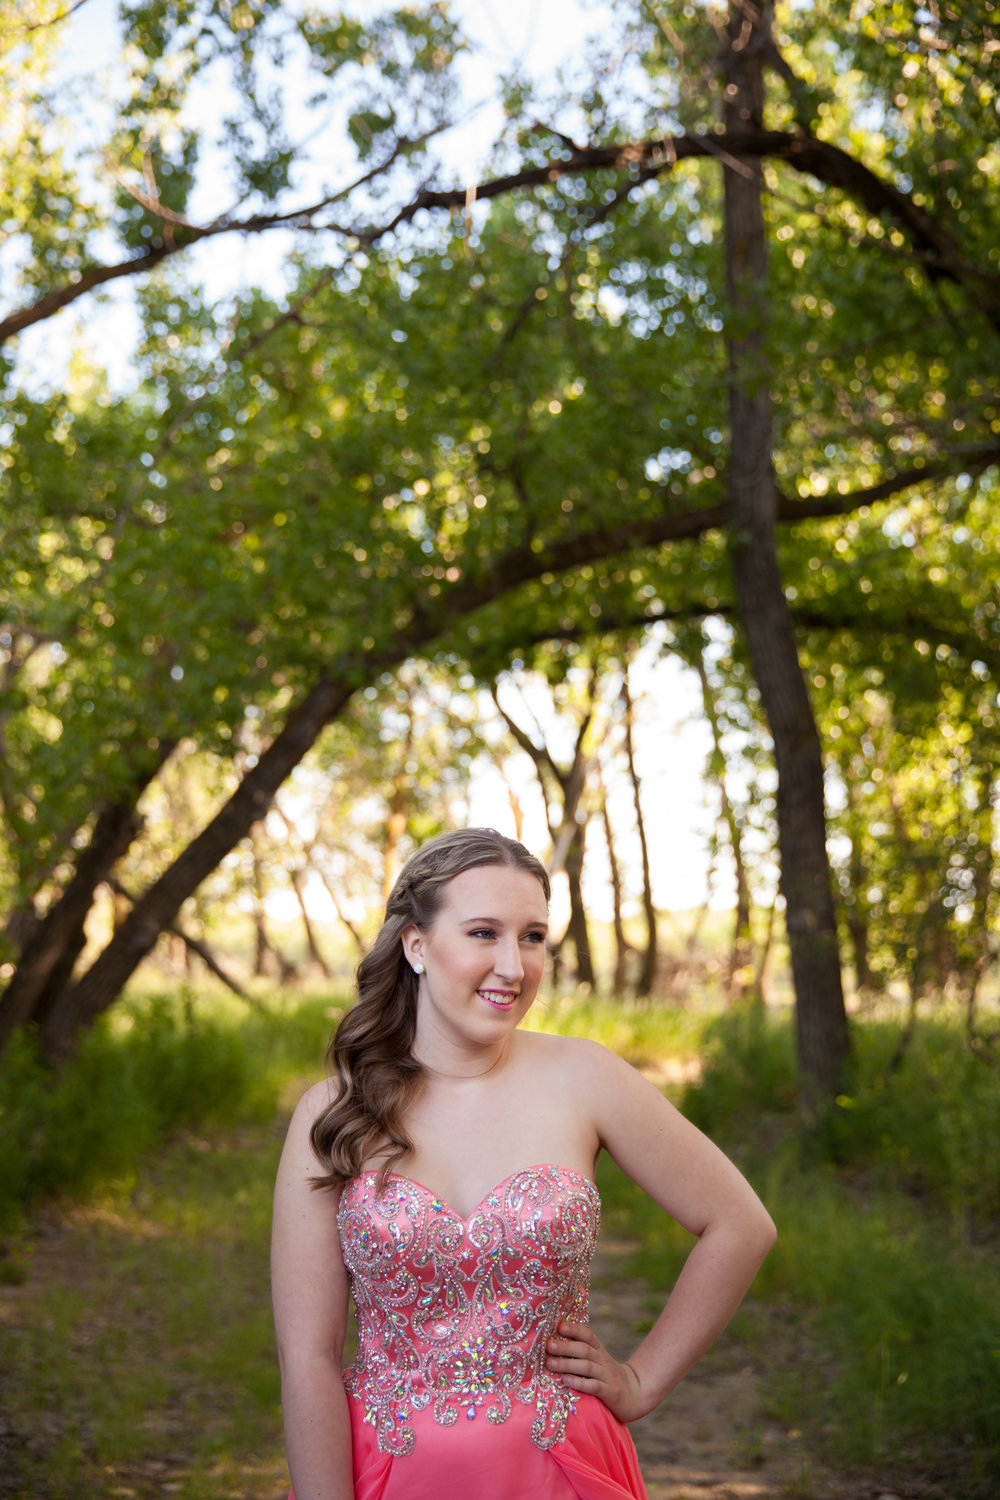 Medicine Hat Grad Photography, Medicine Hat Photography, Grad Photos Medicine Hat, Saskatchewan Grad Photography